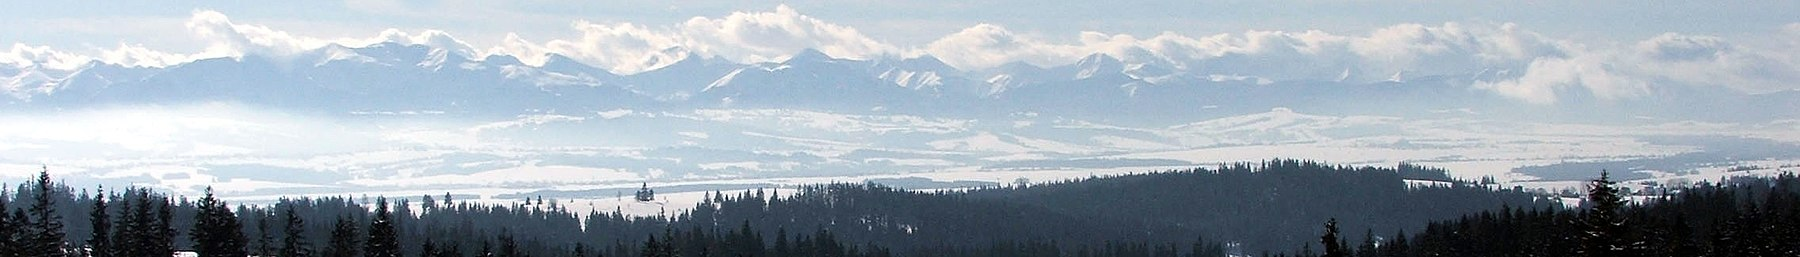 Tatra mountains View from Nowy Targ (cropped).jpg